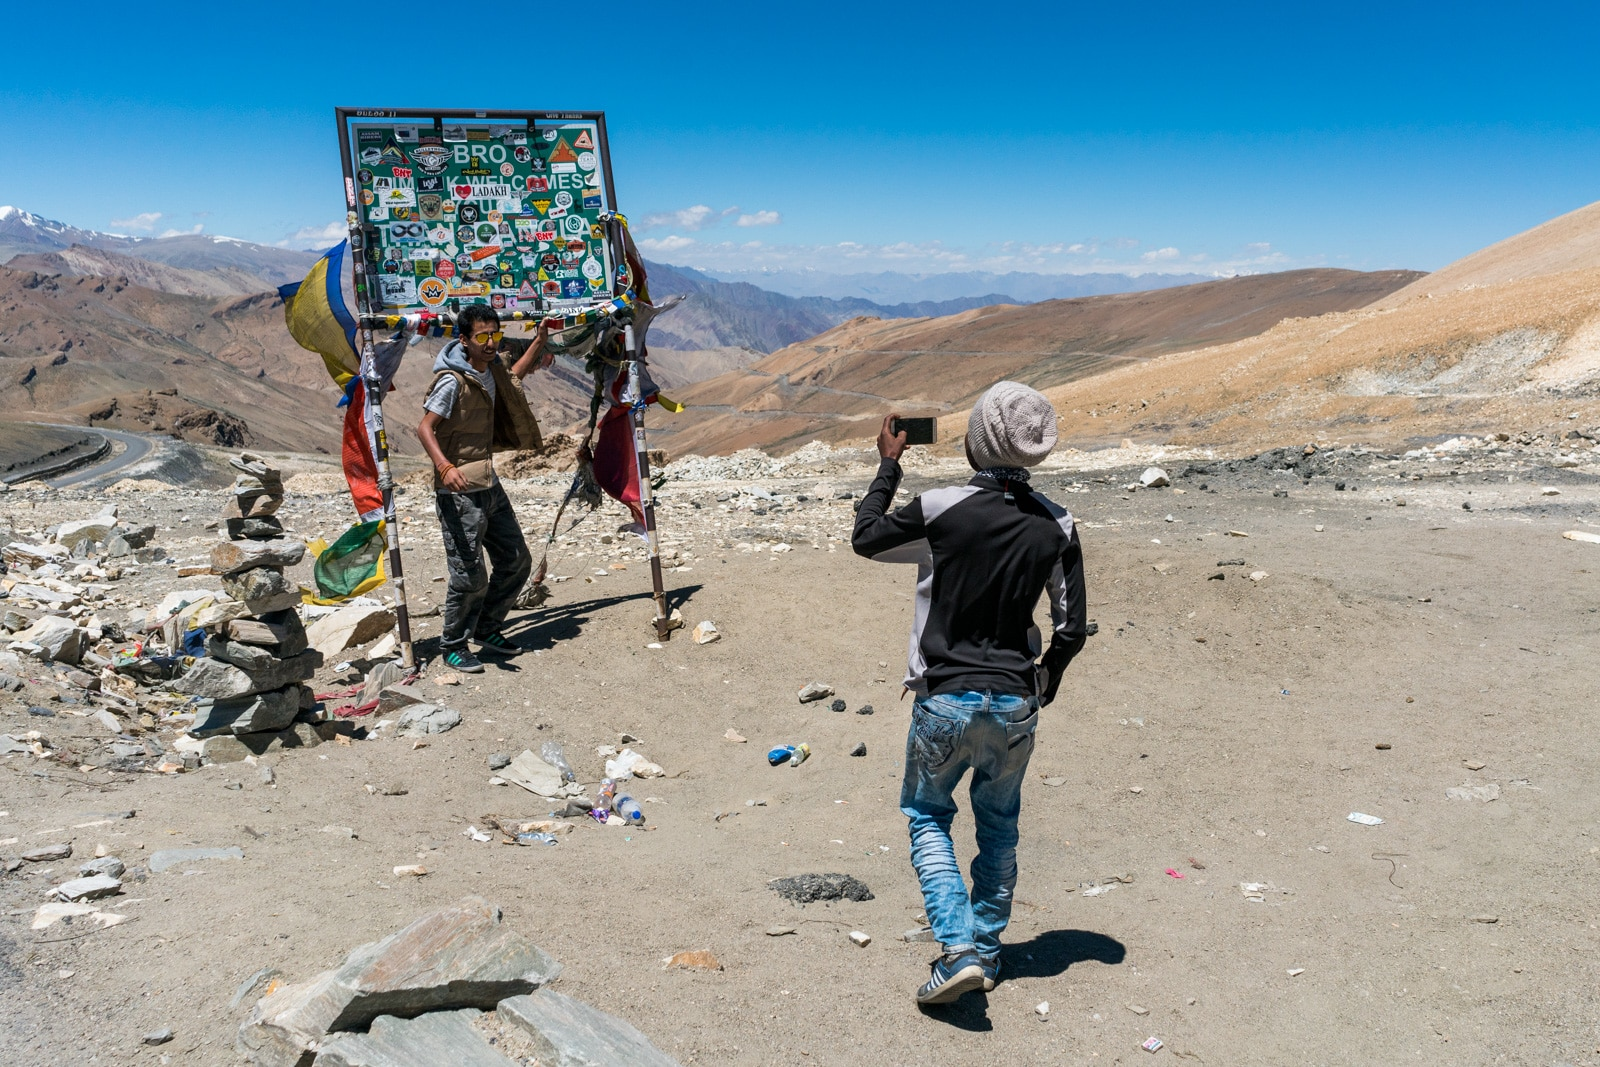 Hitchhiking the Leh - Manali highway - Selfie time at Tanglang La pass in India - Lost With Purpose travel blog